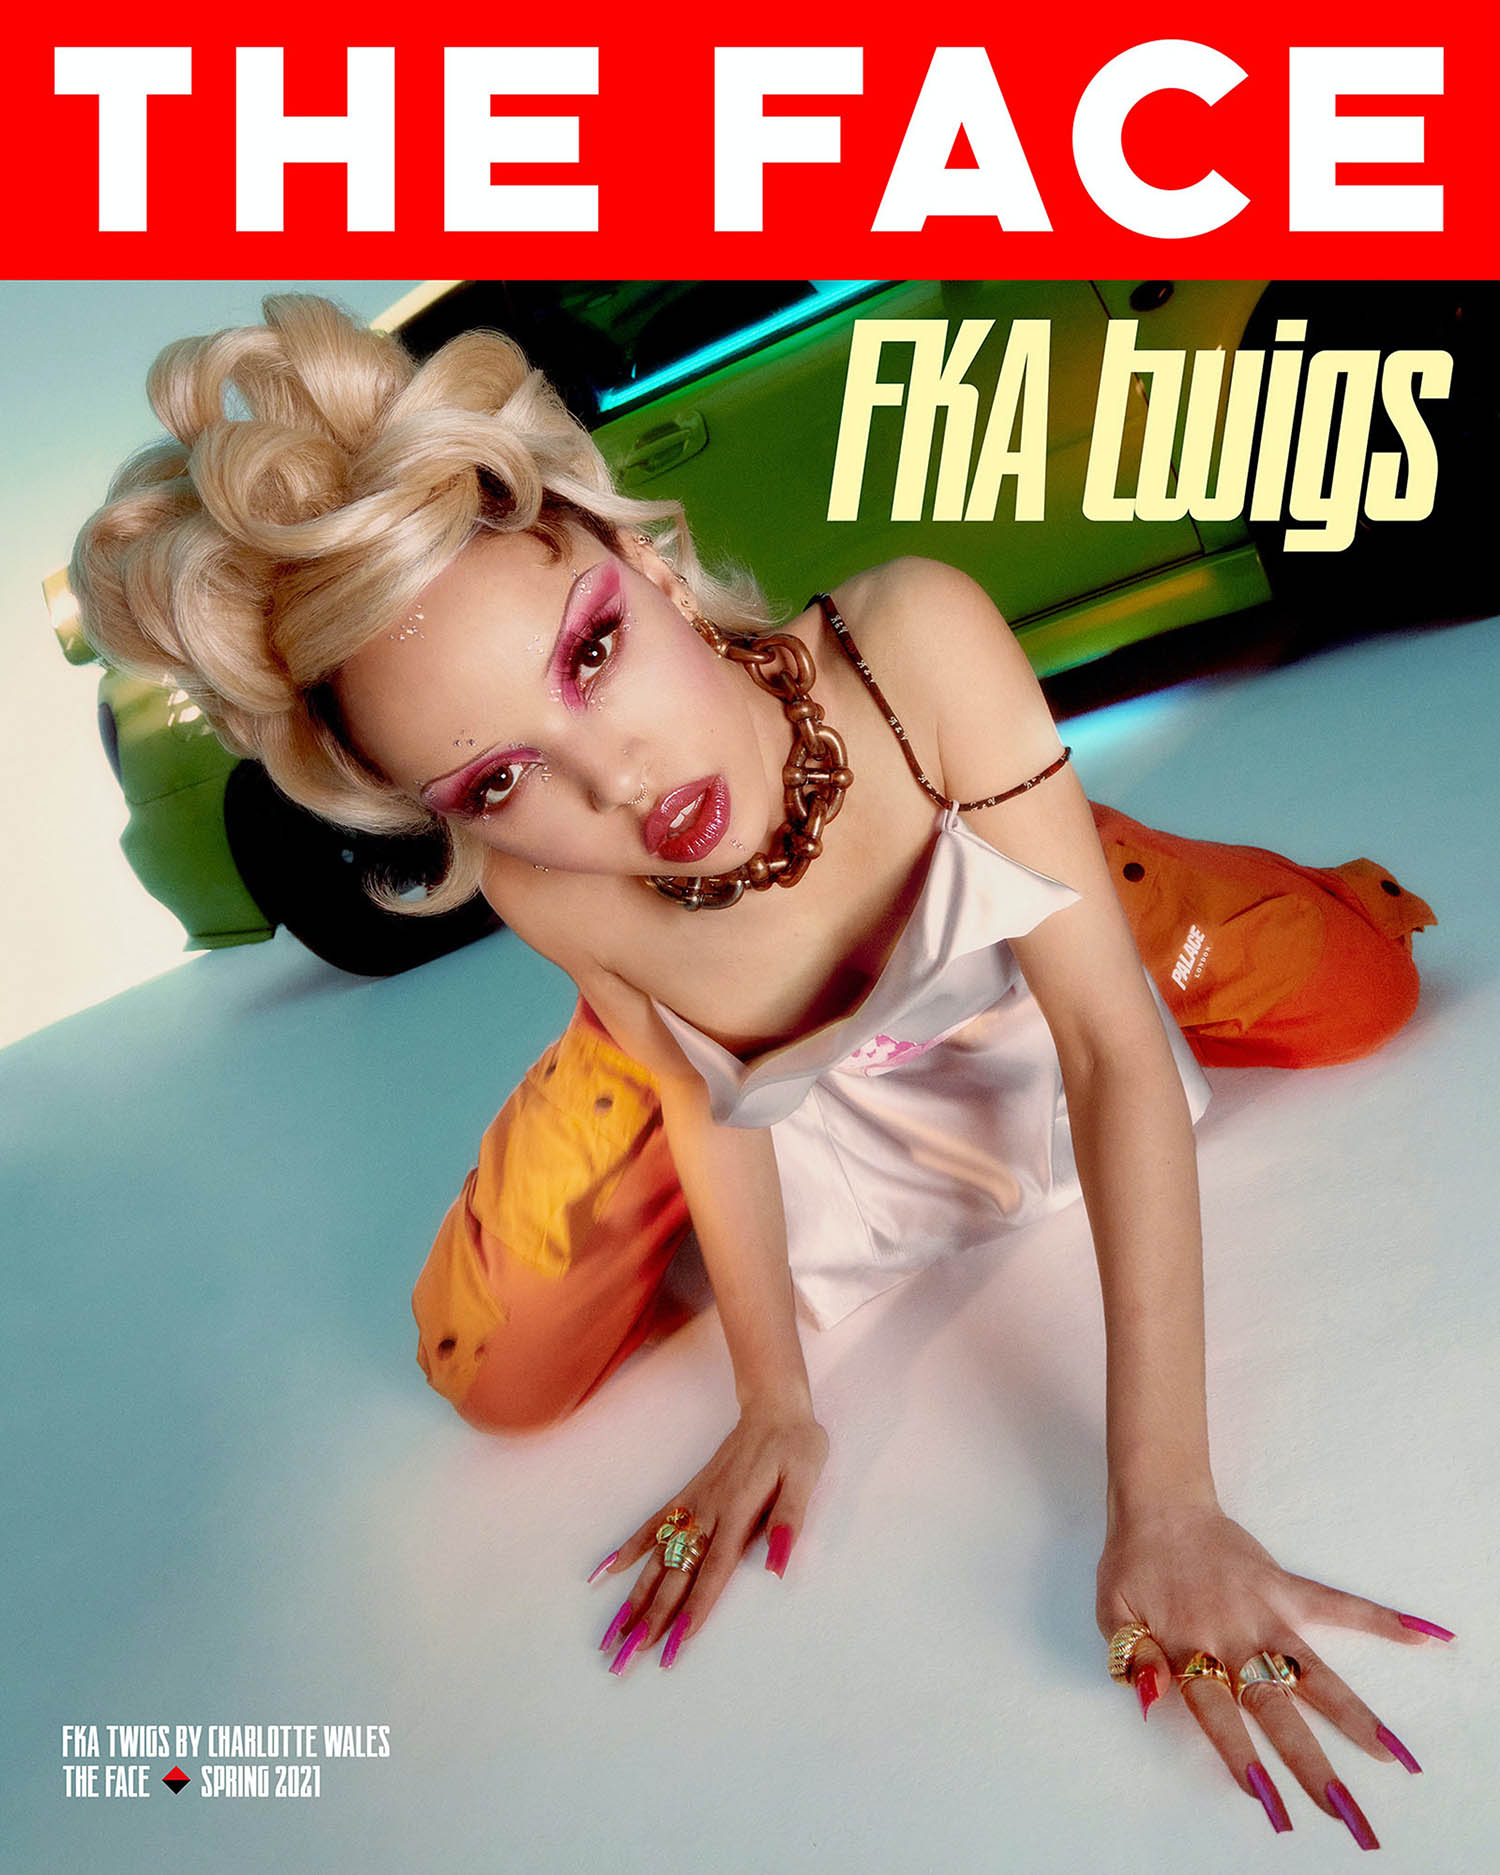 FKA Twigs covers The Face Magazine Spring 2021 by Charlotte Wales